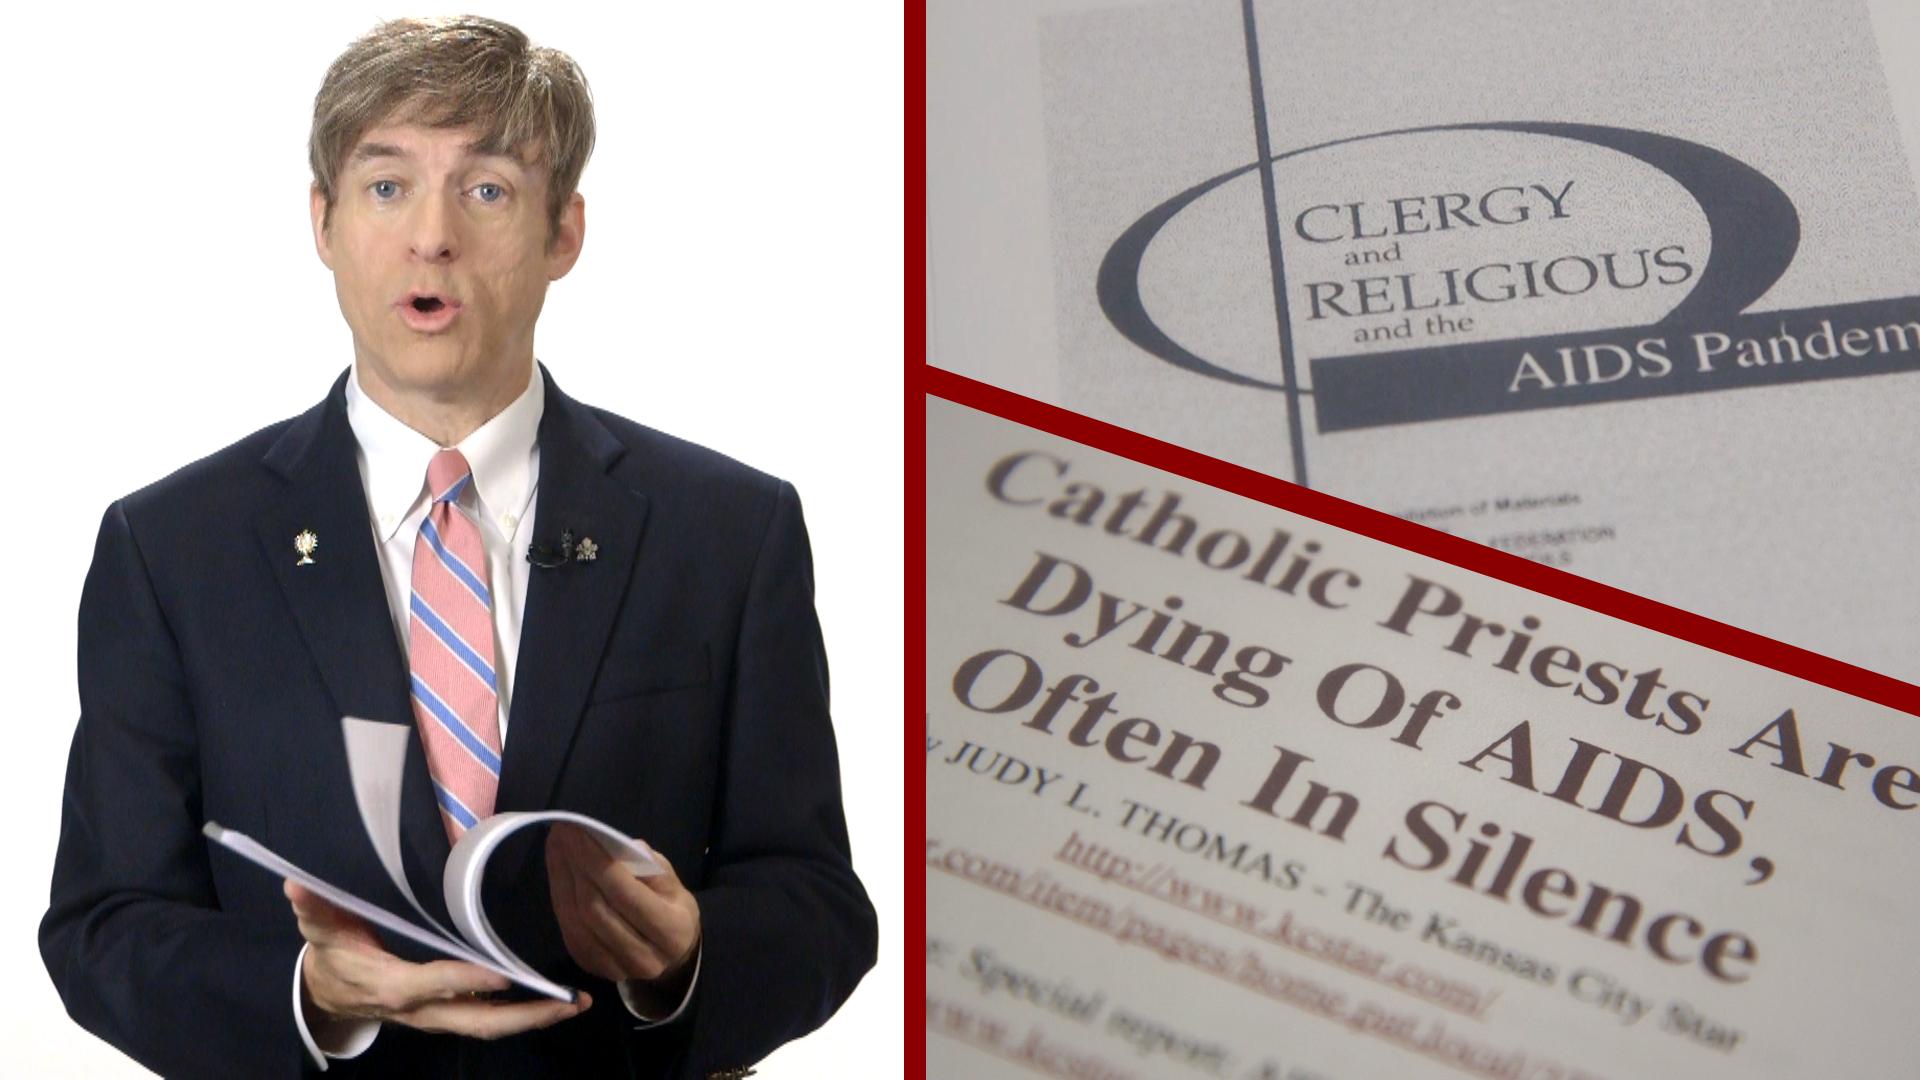 Homosexuality in the priesthood and the religious life